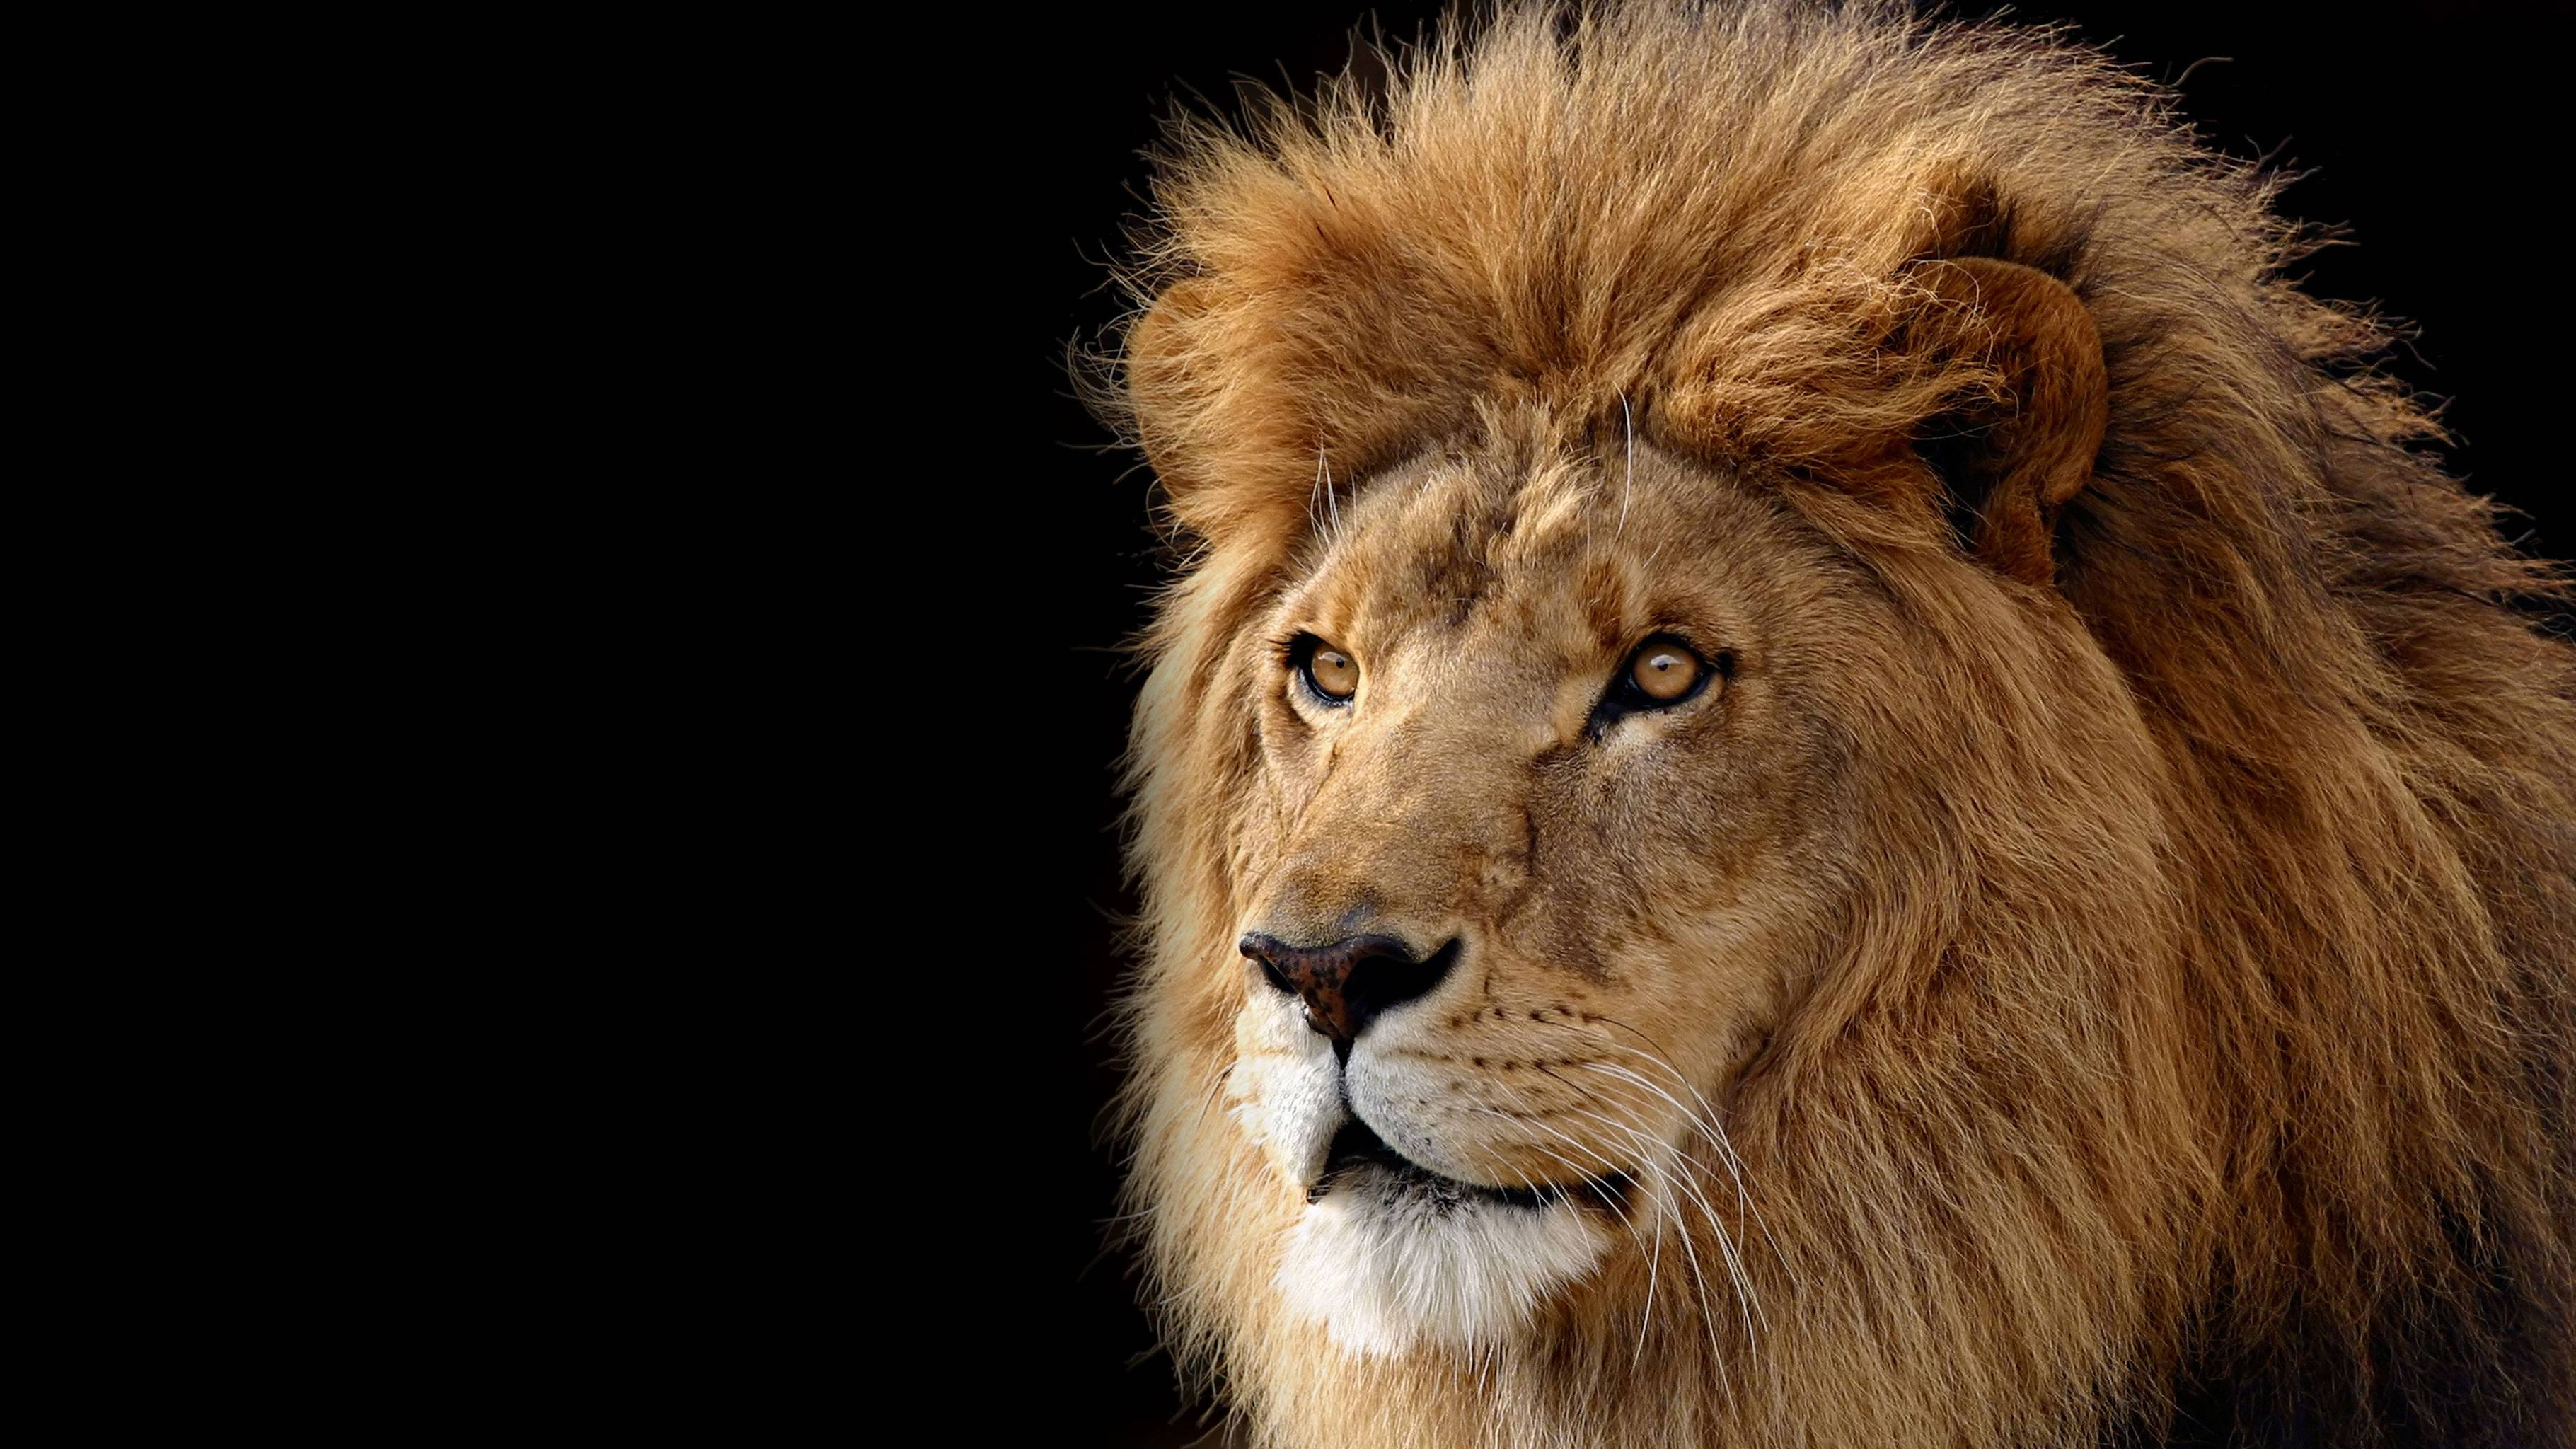 Lion Wallpapers | Sky HD Wallpaper